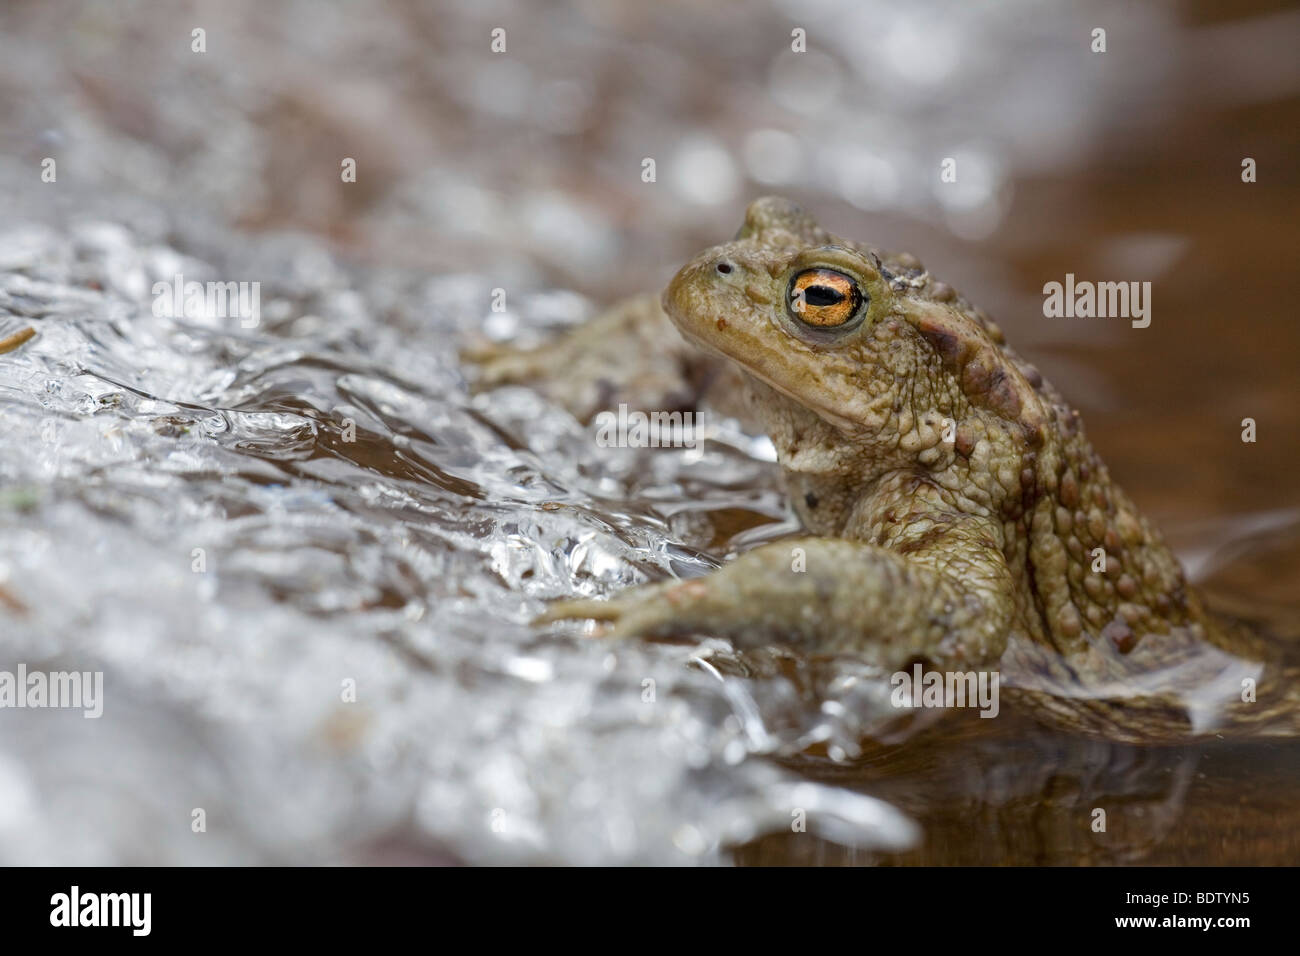 Erdkroete an Eiskante, Common Toad at sheet of ice (Bufo bufo) Stock Photo